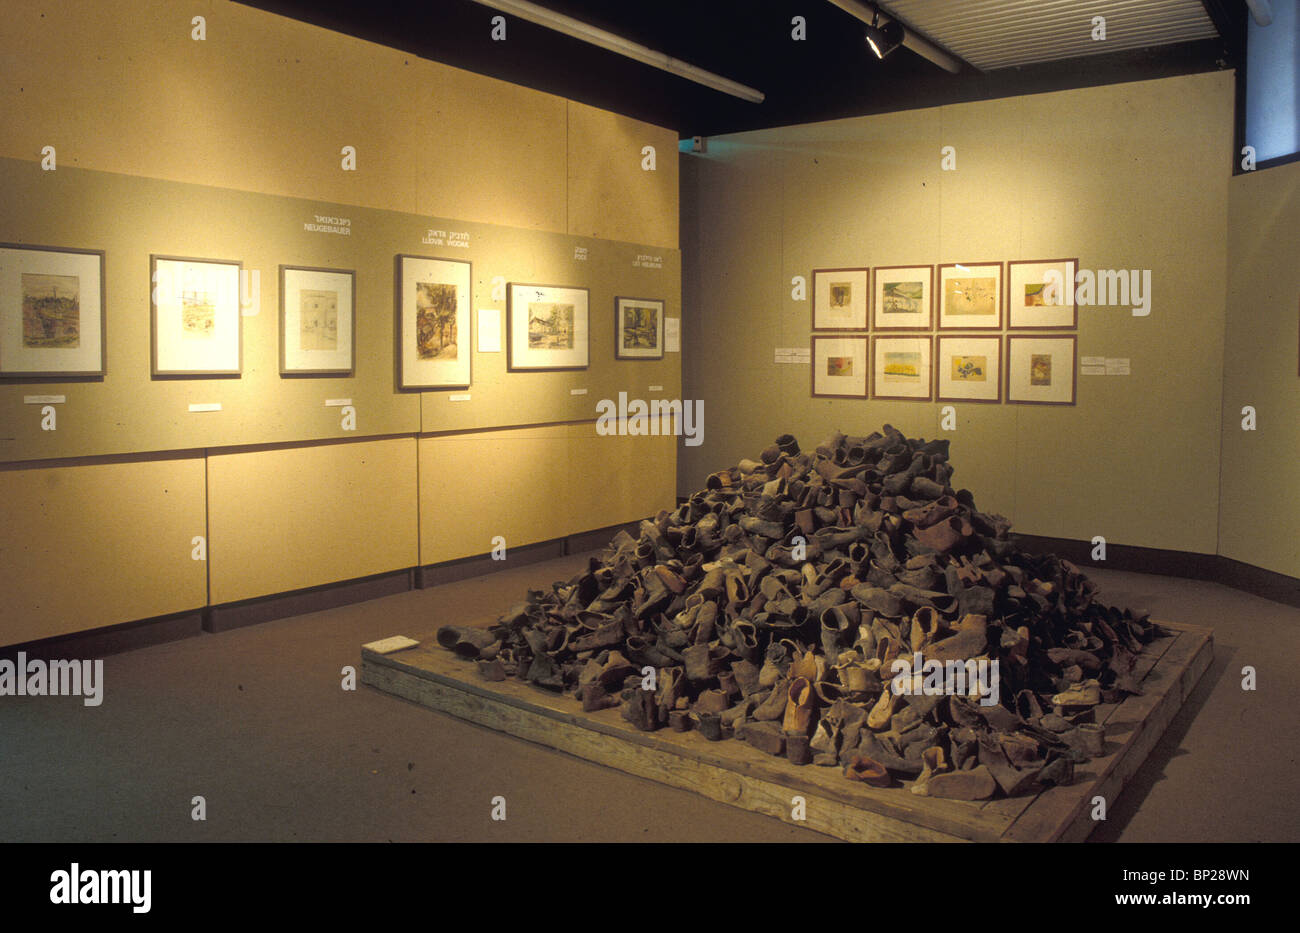 YAD VASHEM - THE HISTORICAL MUSEUM DOCUMENTING THE HOLOCAUST THROUGH PHOTOGRAPHS ARTIFACTS DOCUMENTS ECT. PIC: PILE - Stock Image